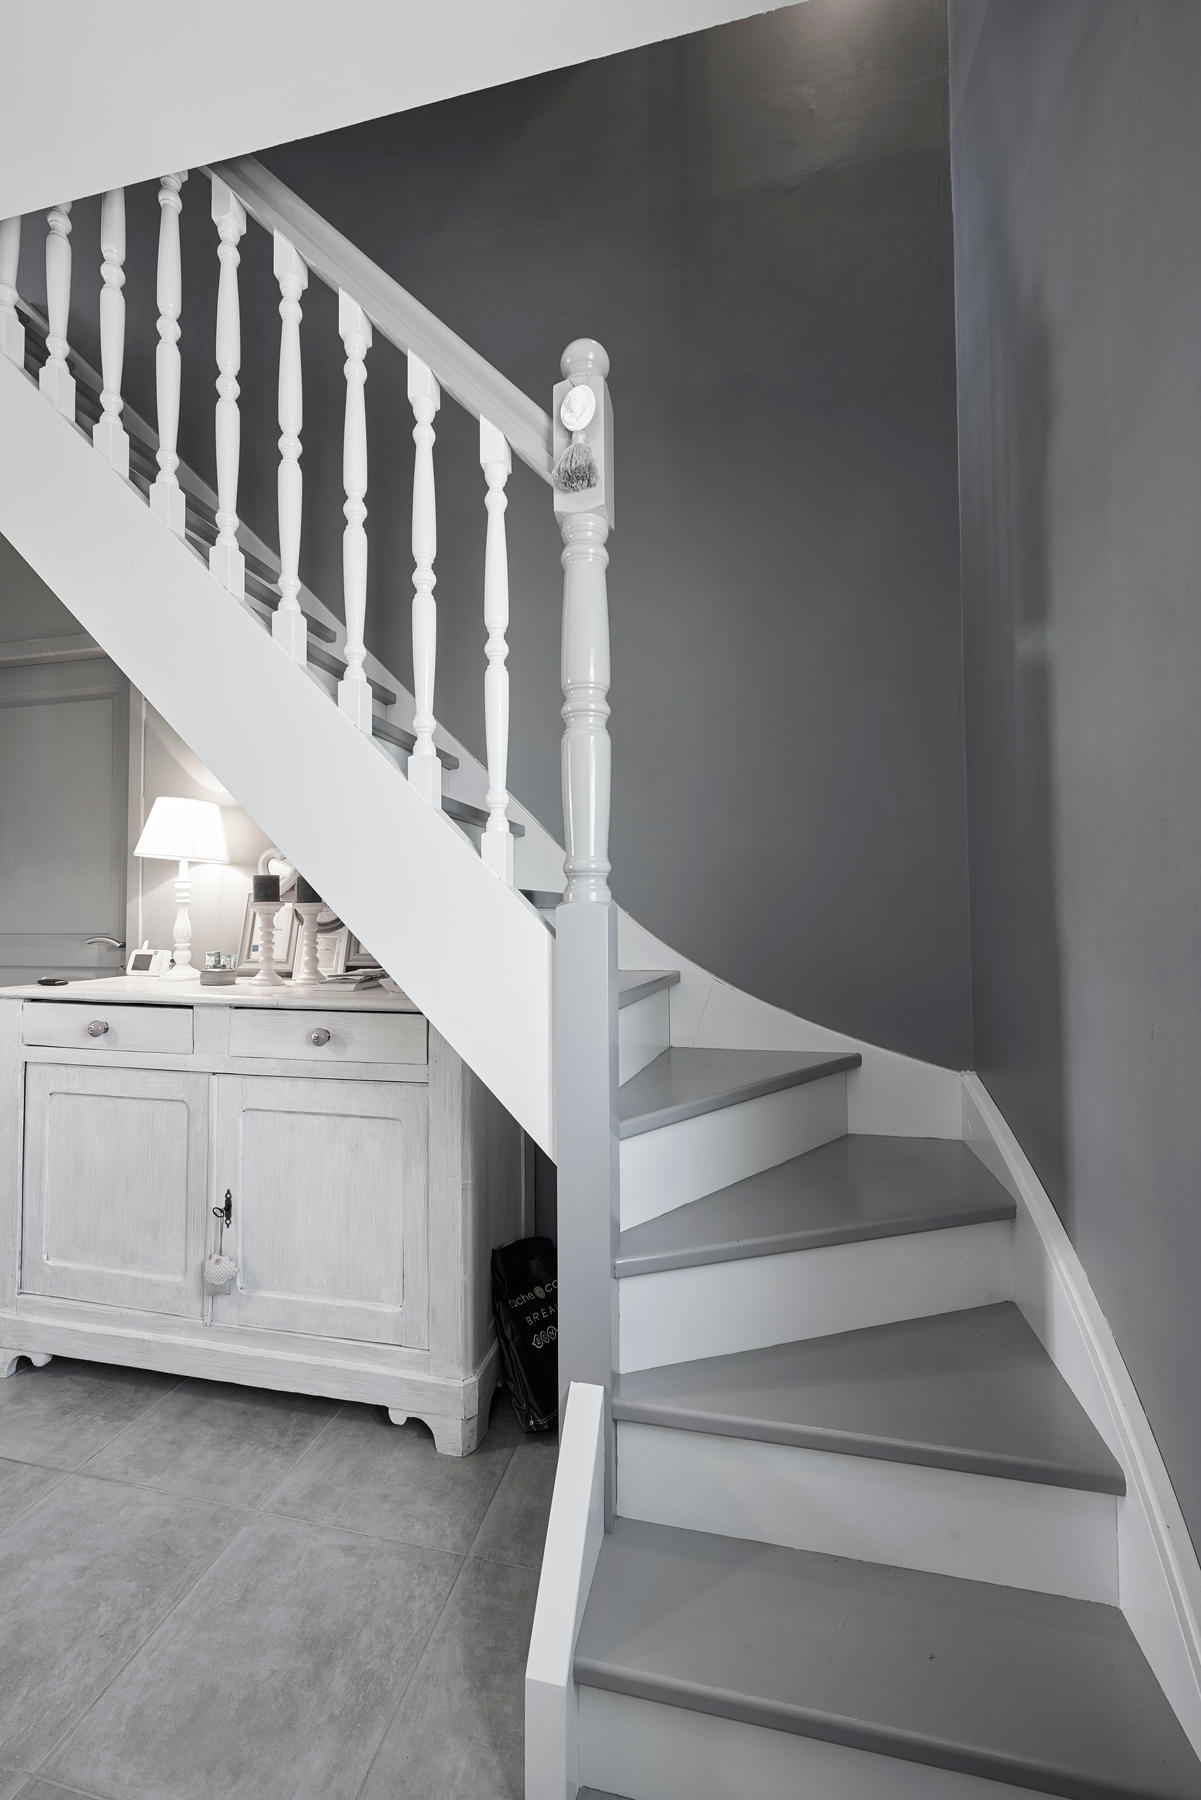 escalier gris top escalier peint en gris download this picture here aew with escalier gris. Black Bedroom Furniture Sets. Home Design Ideas